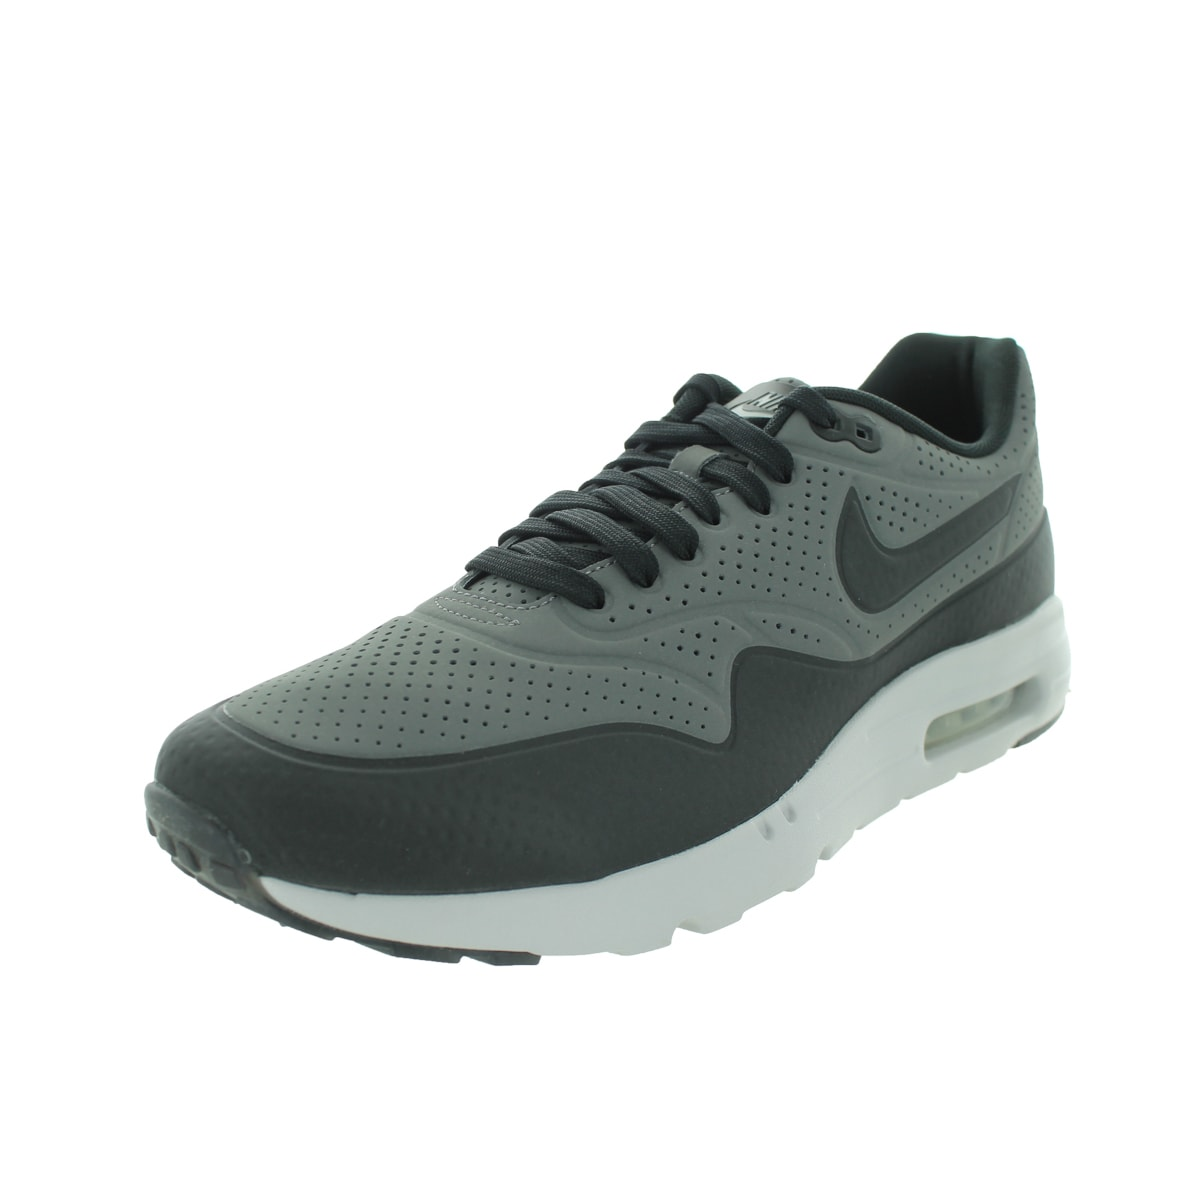 Nike Men's Air Max 1 Ultra Moire Dark Grey/Black/Flt Silv...